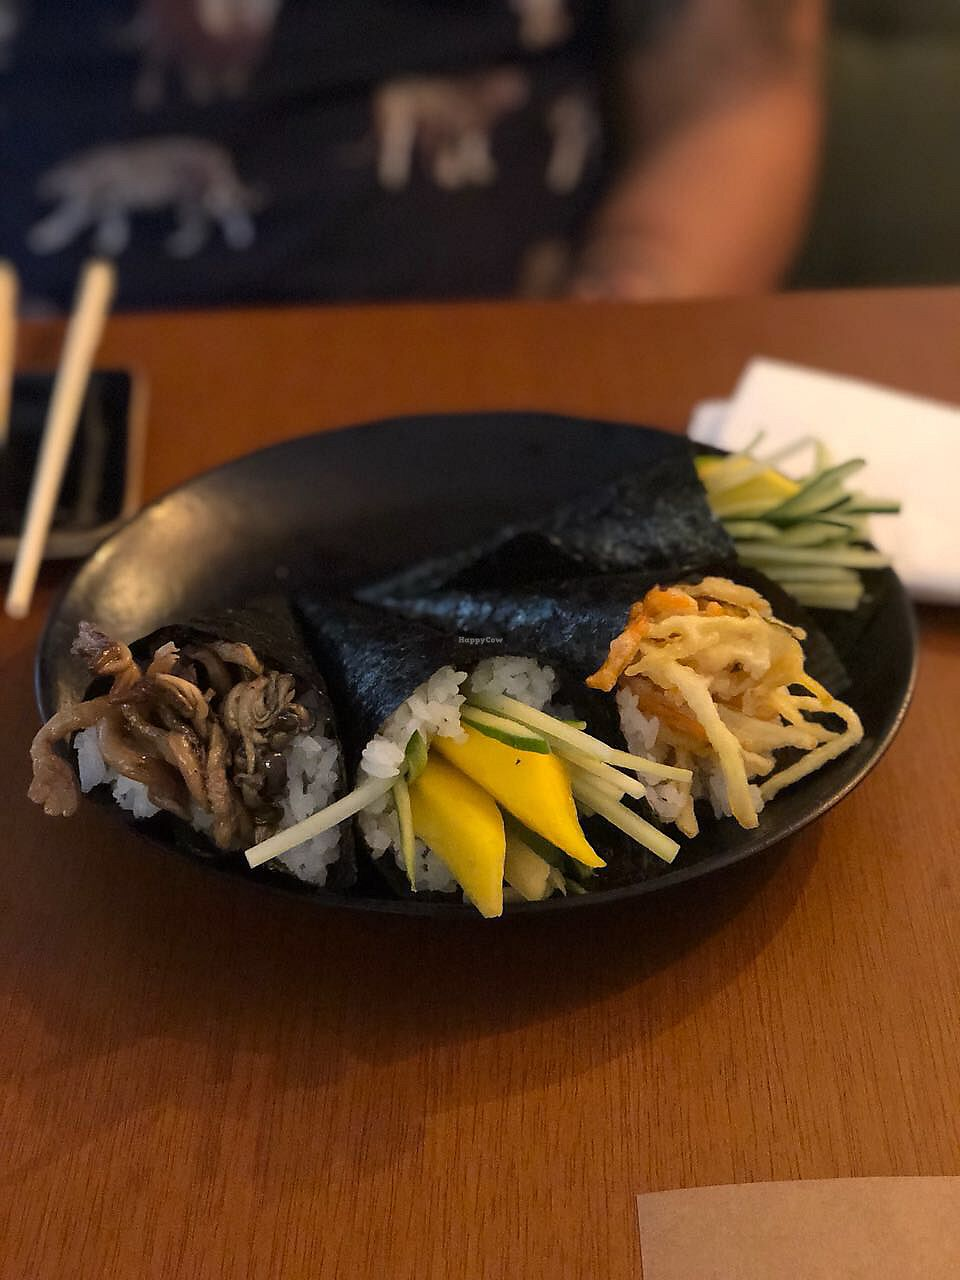 """Photo of Sushimar Vegano  by <a href=""""/members/profile/RhaissaSoares"""">RhaissaSoares</a> <br/>Temaki plate  <br/> February 10, 2018  - <a href='/contact/abuse/image/106773/357377'>Report</a>"""